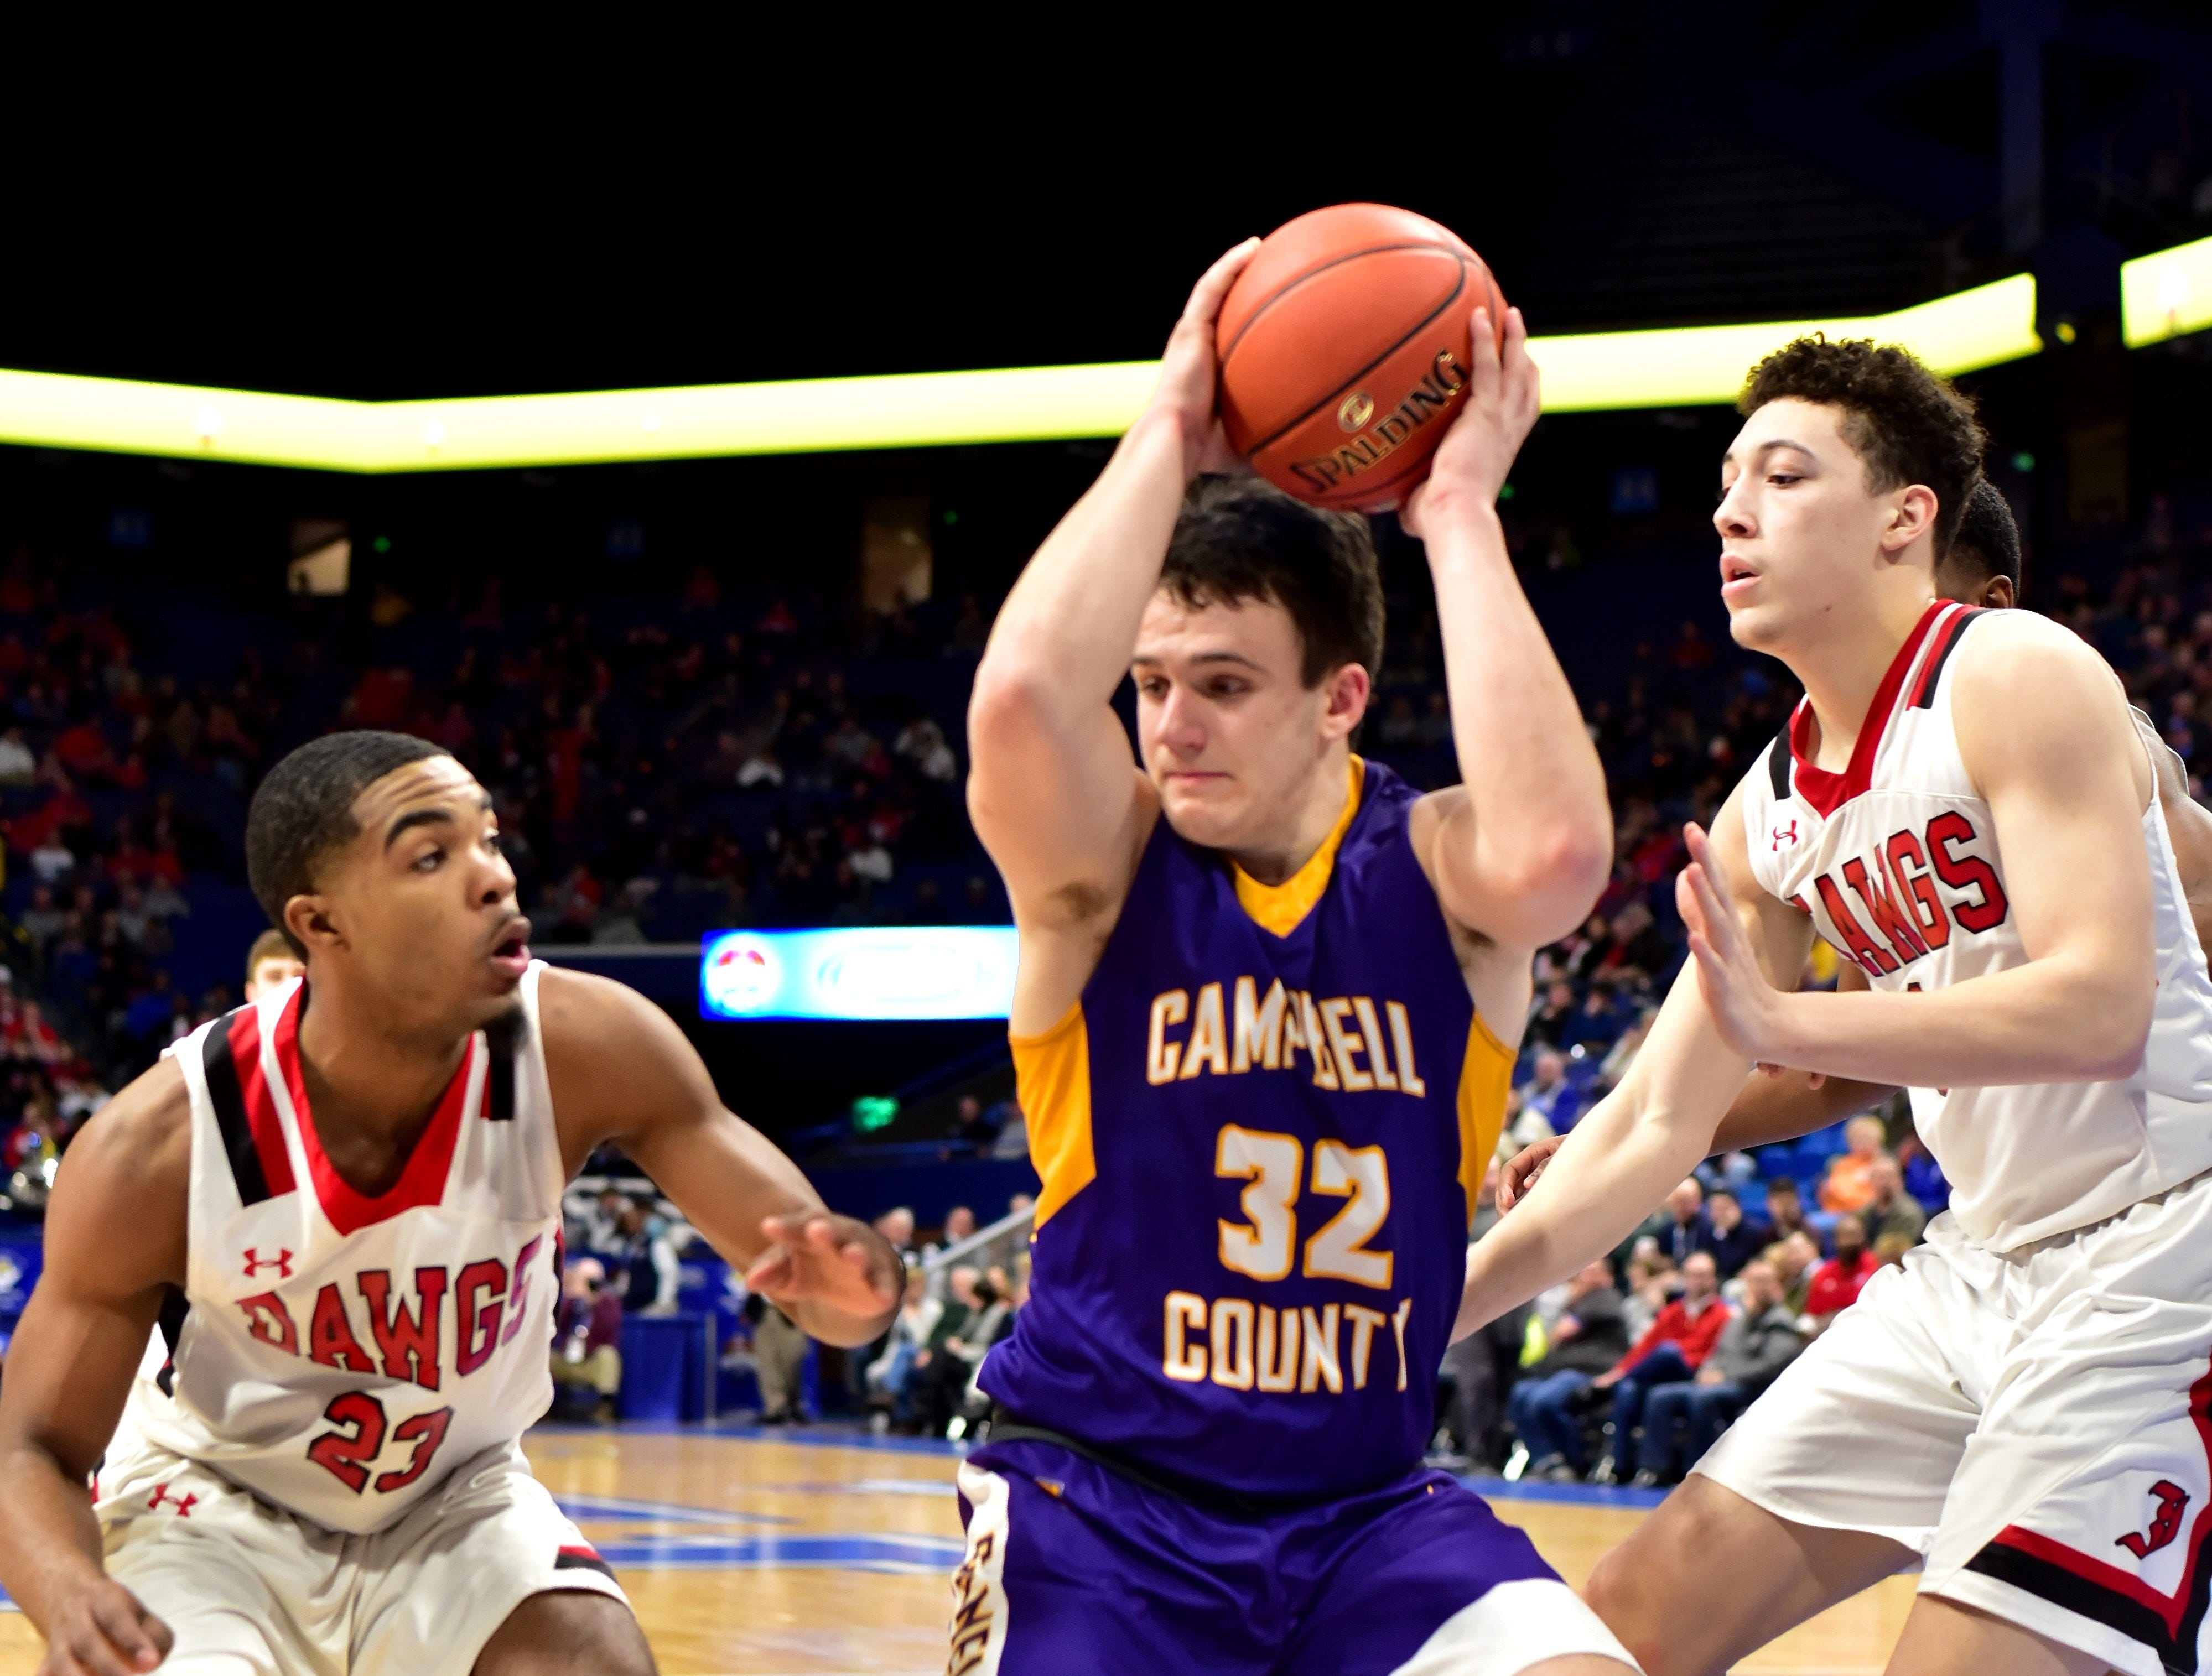 Tanner Lawrence (32) fights to maintain ball control for Campbell County at the KHSAA Sweet 16 Tournament at Rupp Arena in Lexington, KY, March 6, 2019